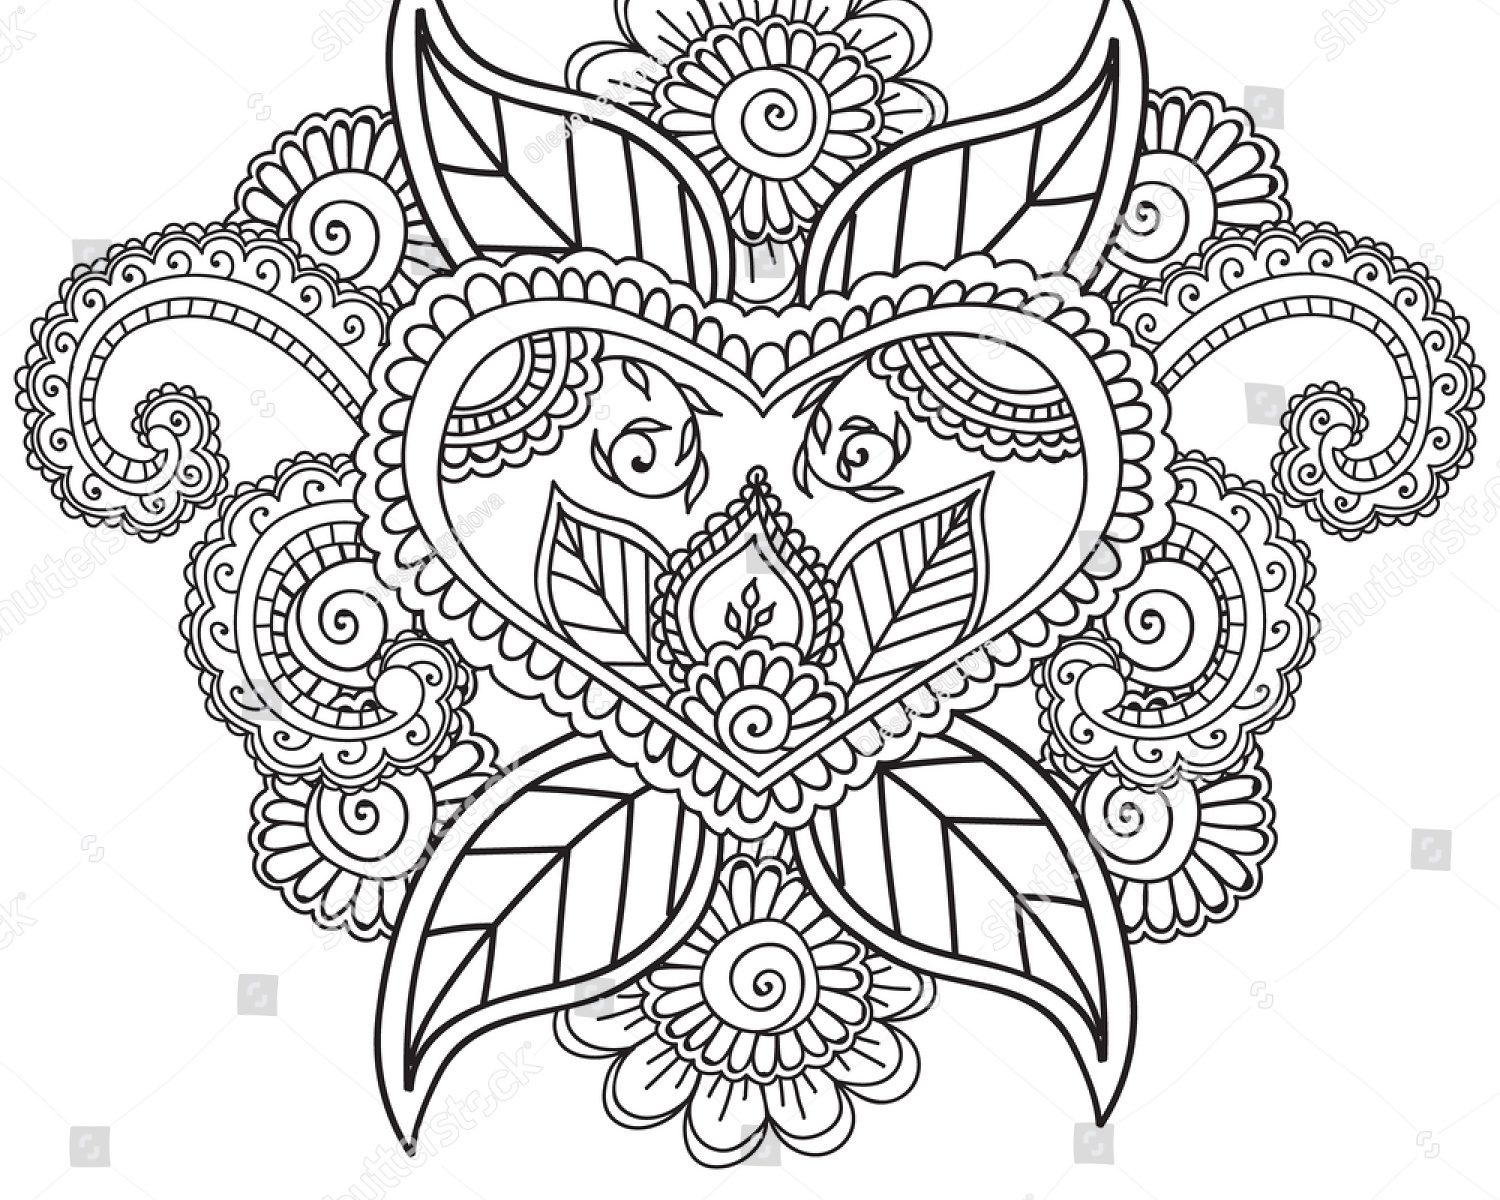 1500x1200 Mehndi Coloring Pages Clever For Adults Pdf Page Images Hd Free